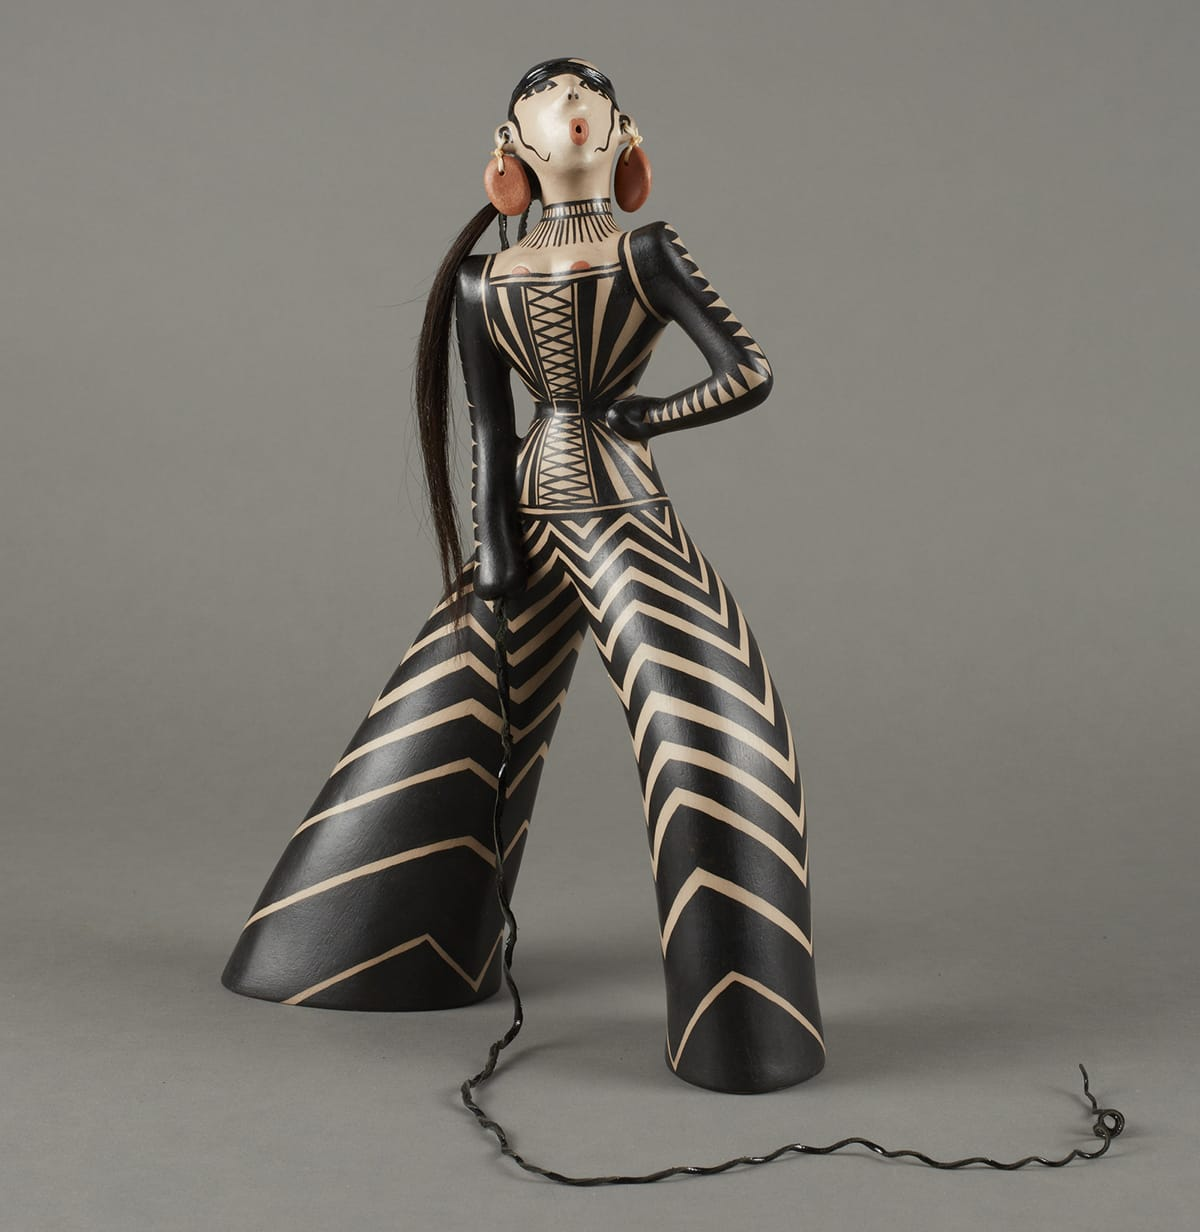 Stylized figure adorned with black-and-white triangular patterns. Details include reddish circular earrings similar to the shape of the lips, a long ponytail, and whip.